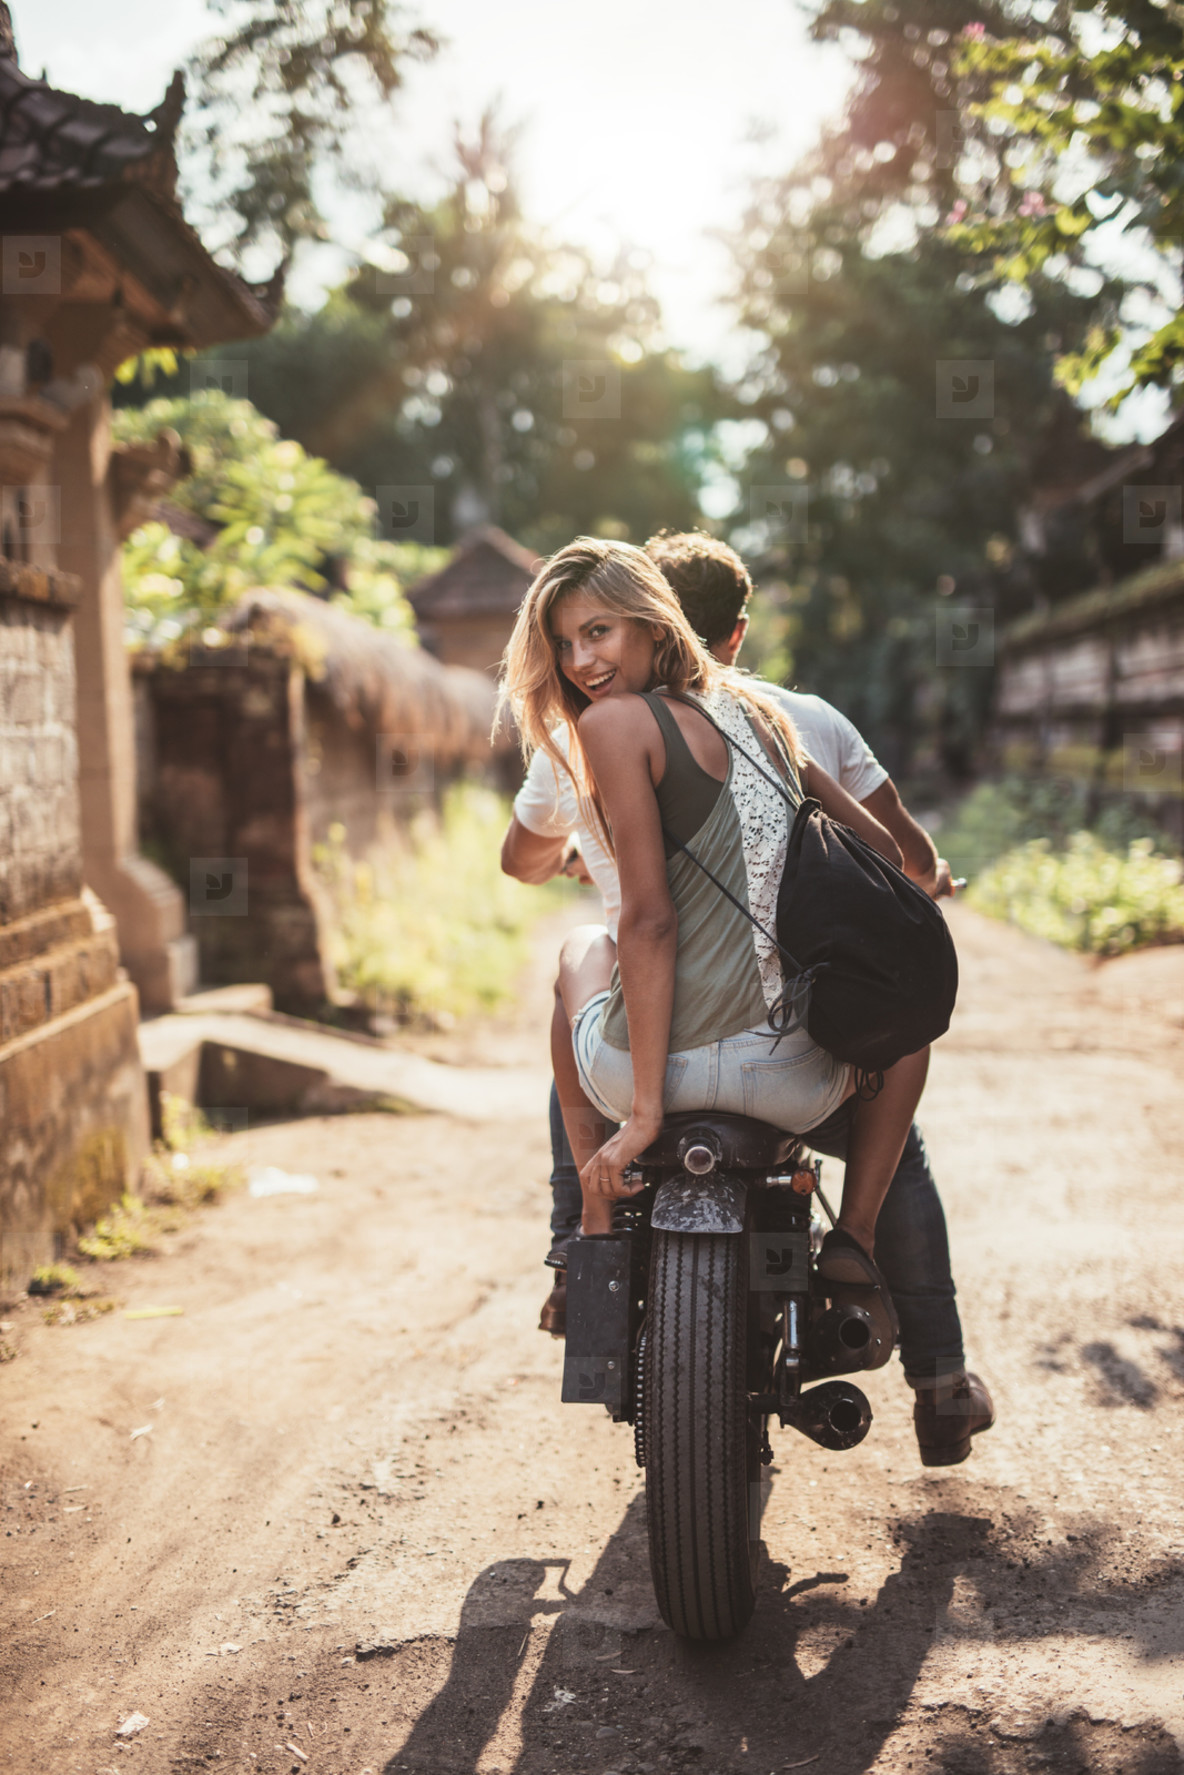 Young couple riding motorcycle